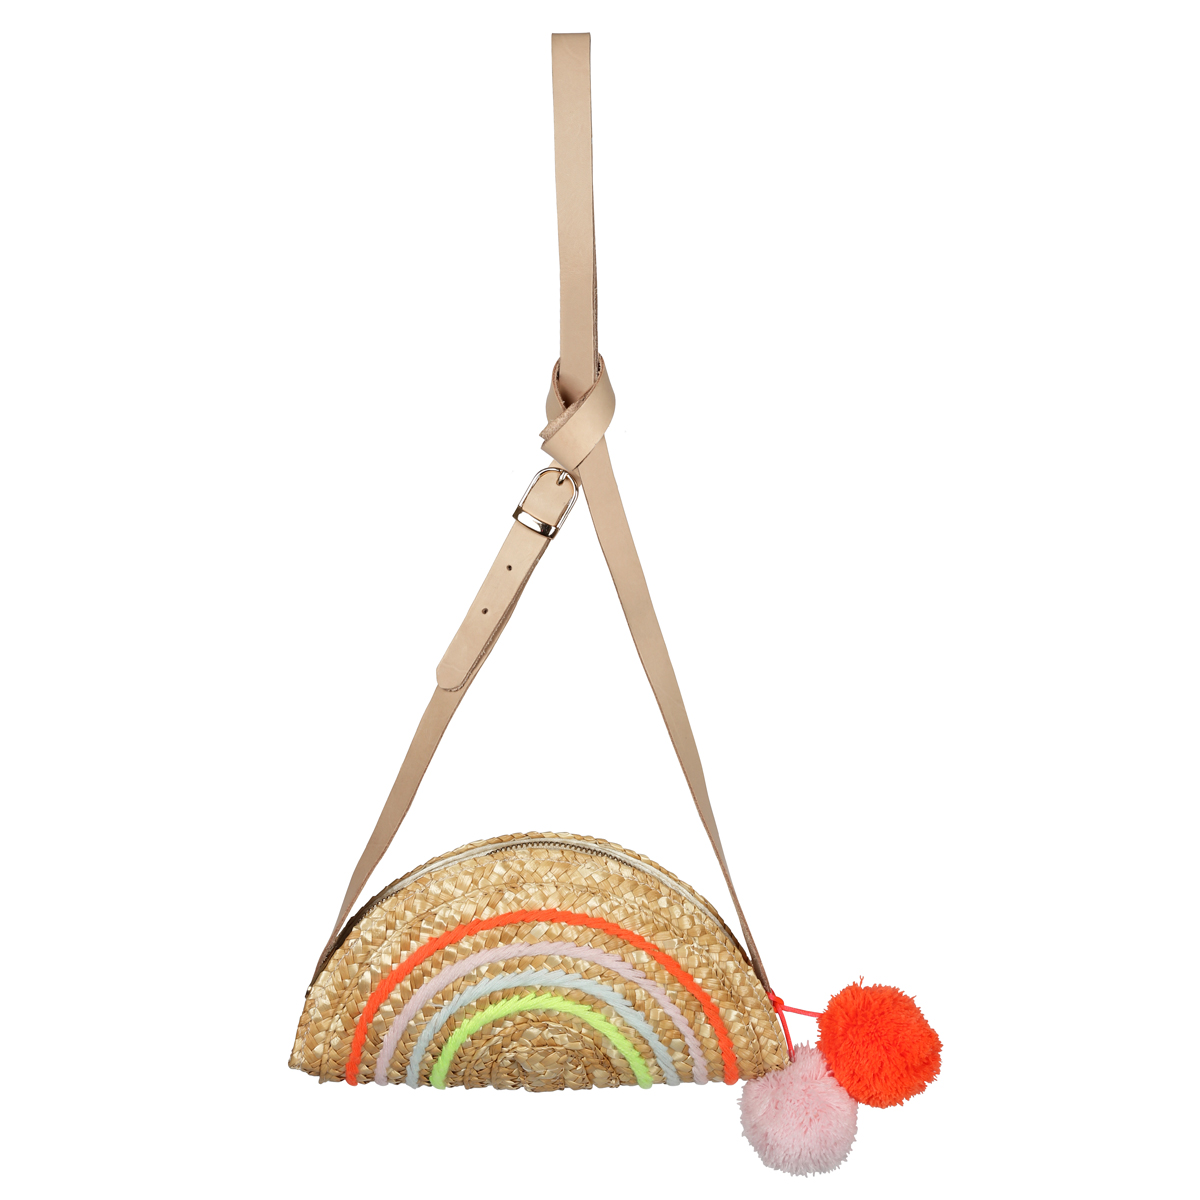 Meri Meri SS19 Rainbow Straw Bag